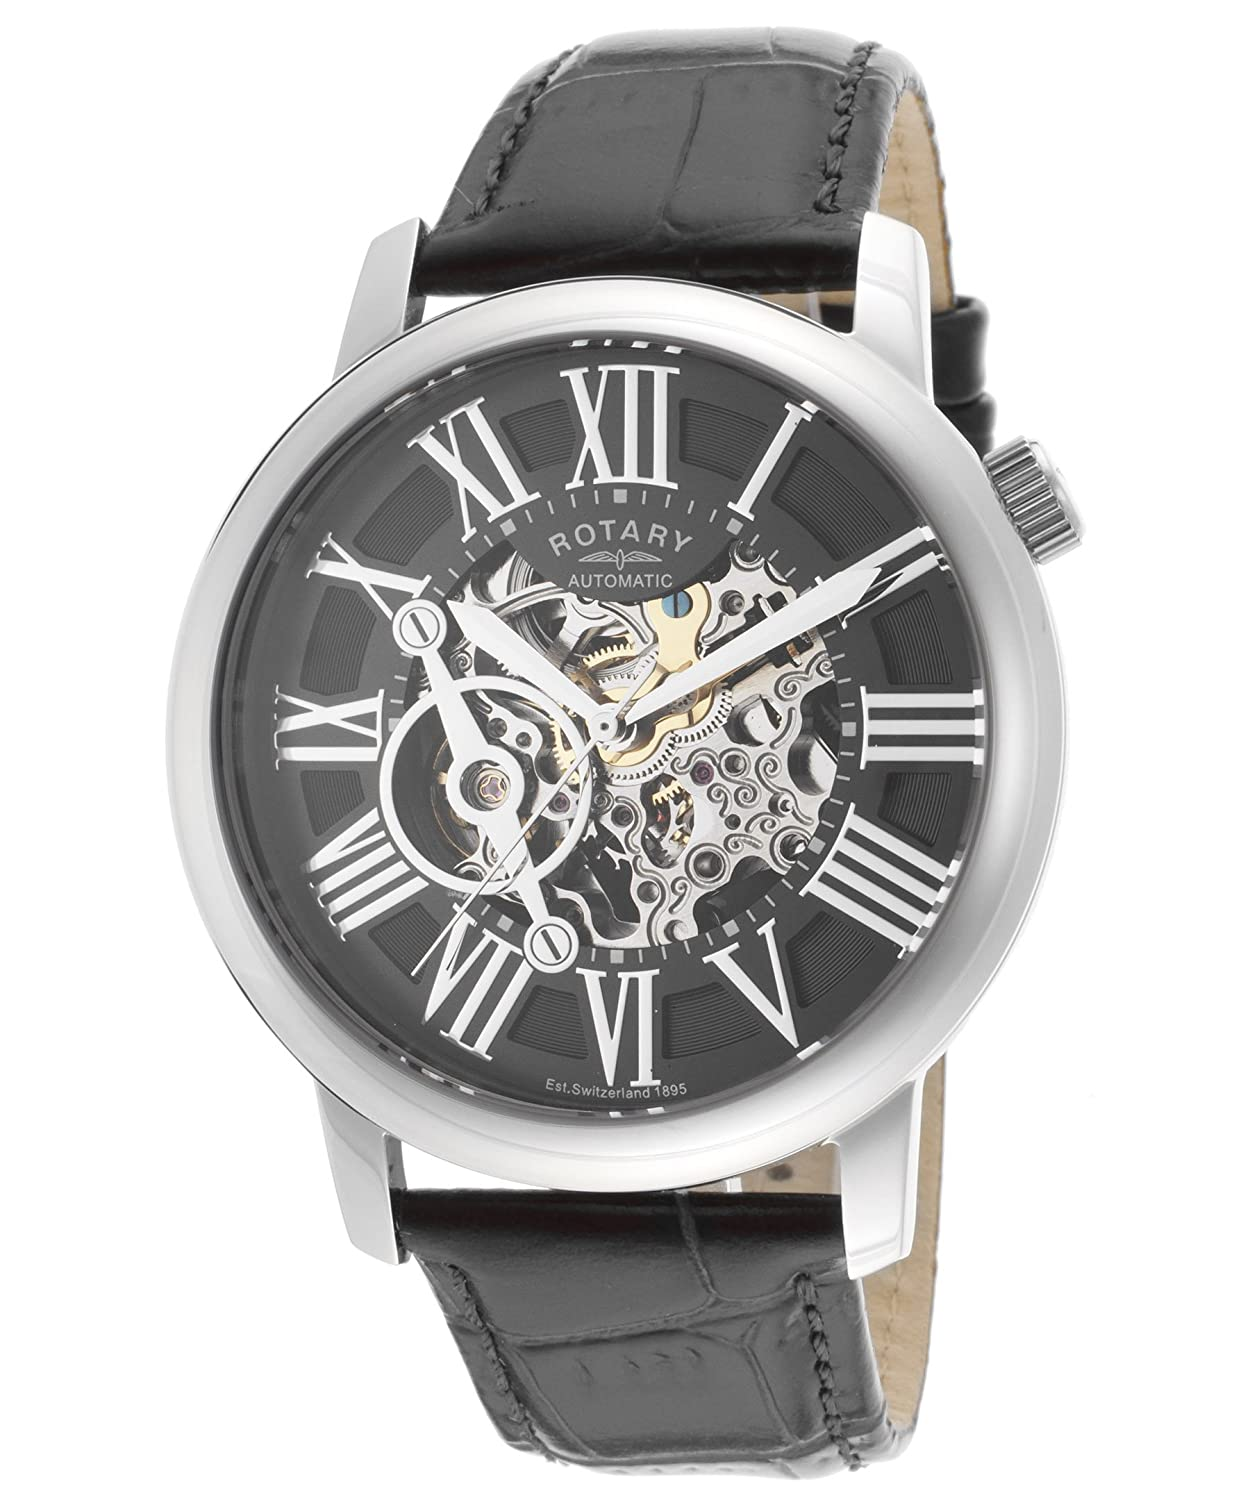 Amazon.com: Rotary Mens Automatic Watch with Skeleton Dial and Black Leather Strap: Watches